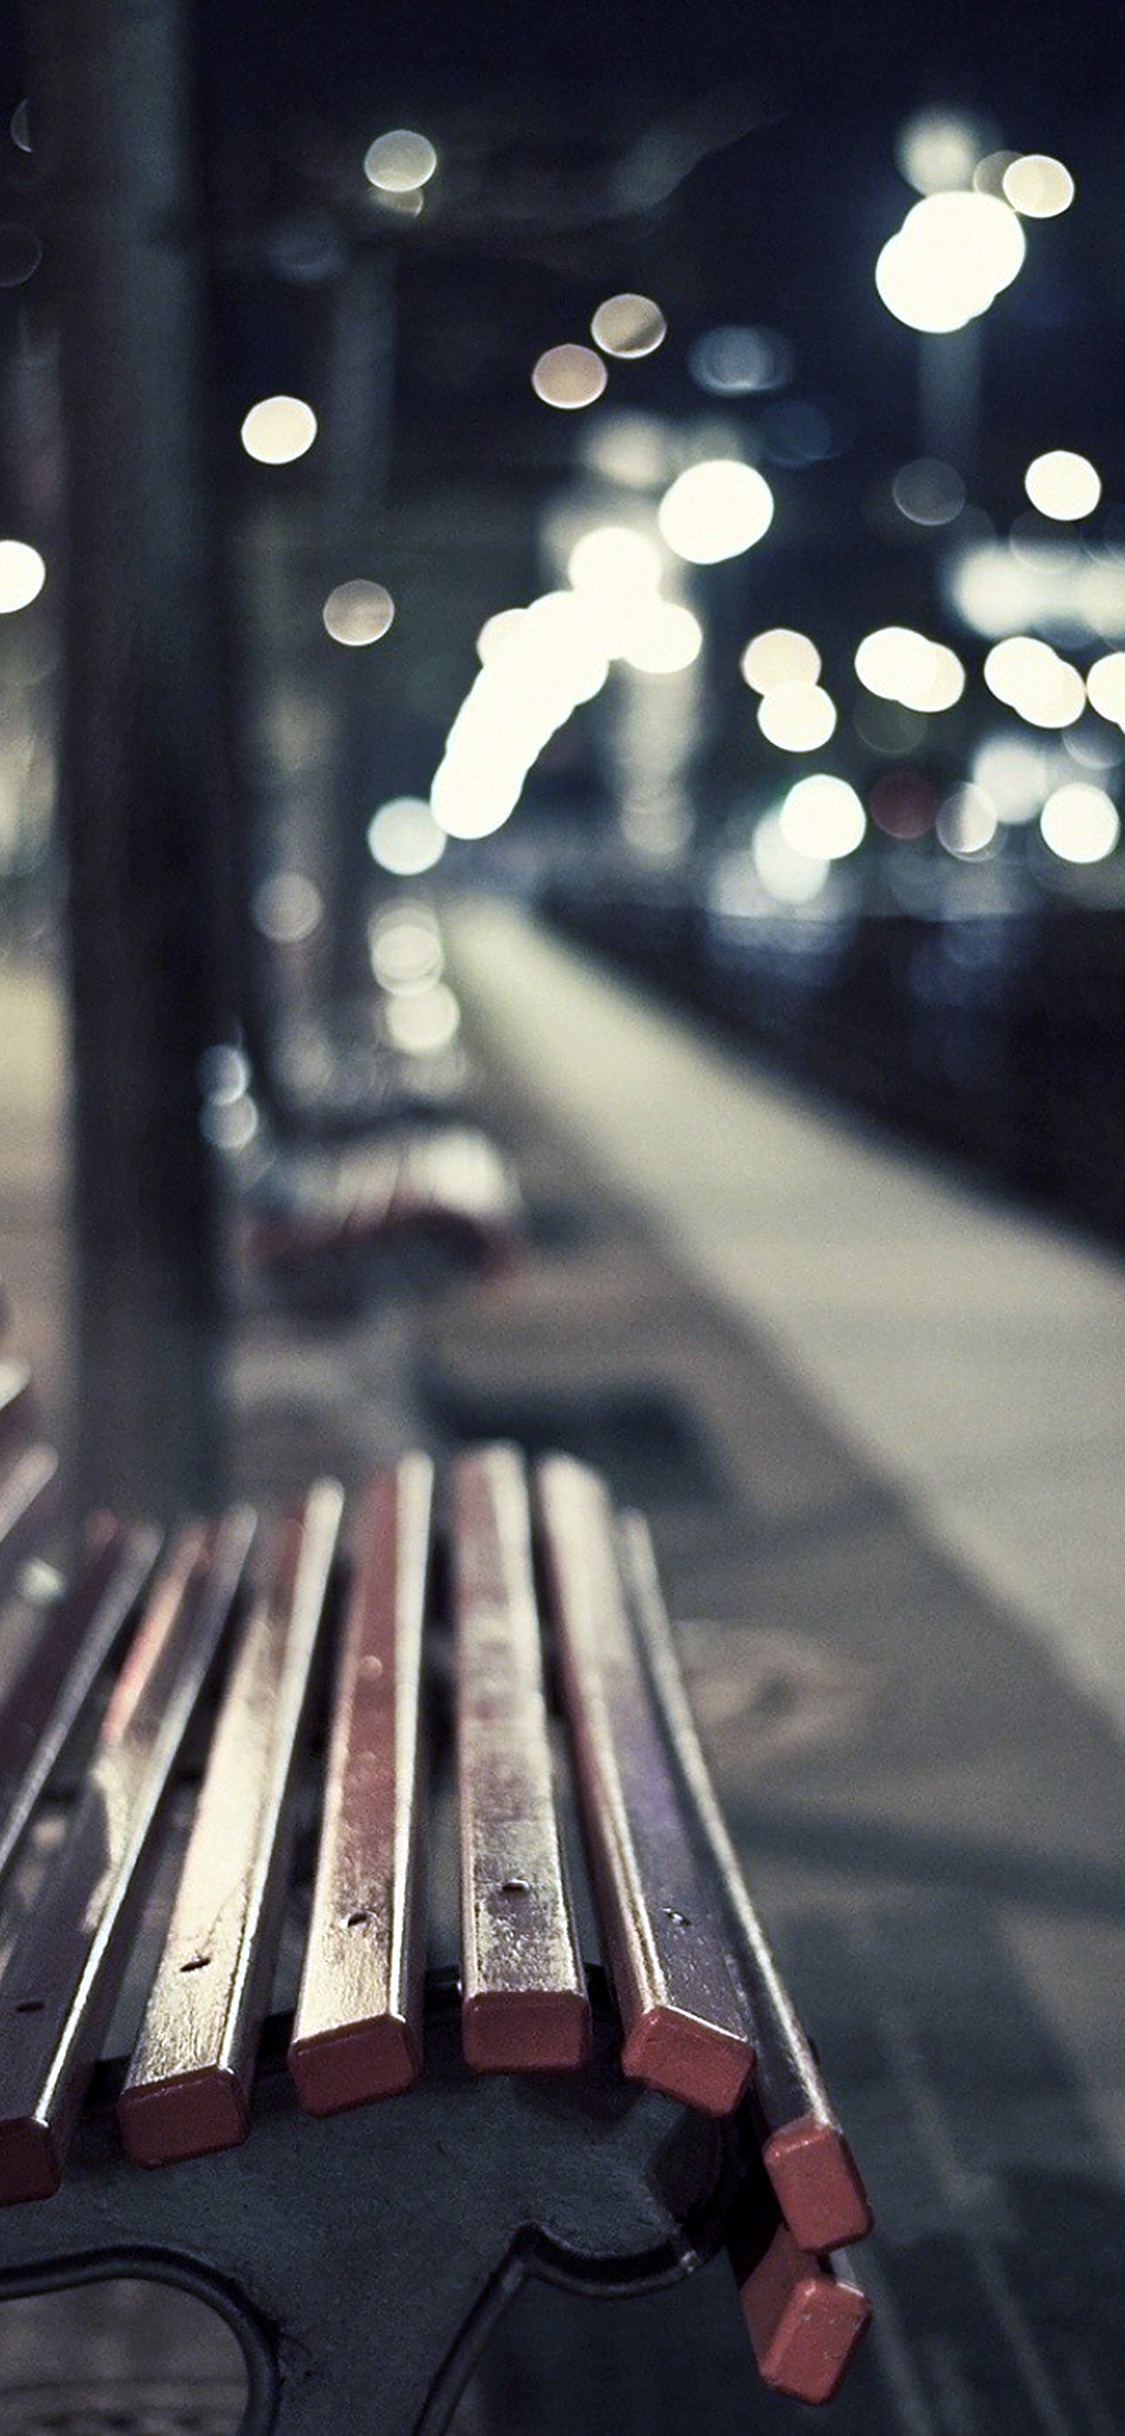 iPhoneXpapers.com-Apple-iPhone-wallpaper-mf78-street-chair-melancholy-night-lights-bokeh-city